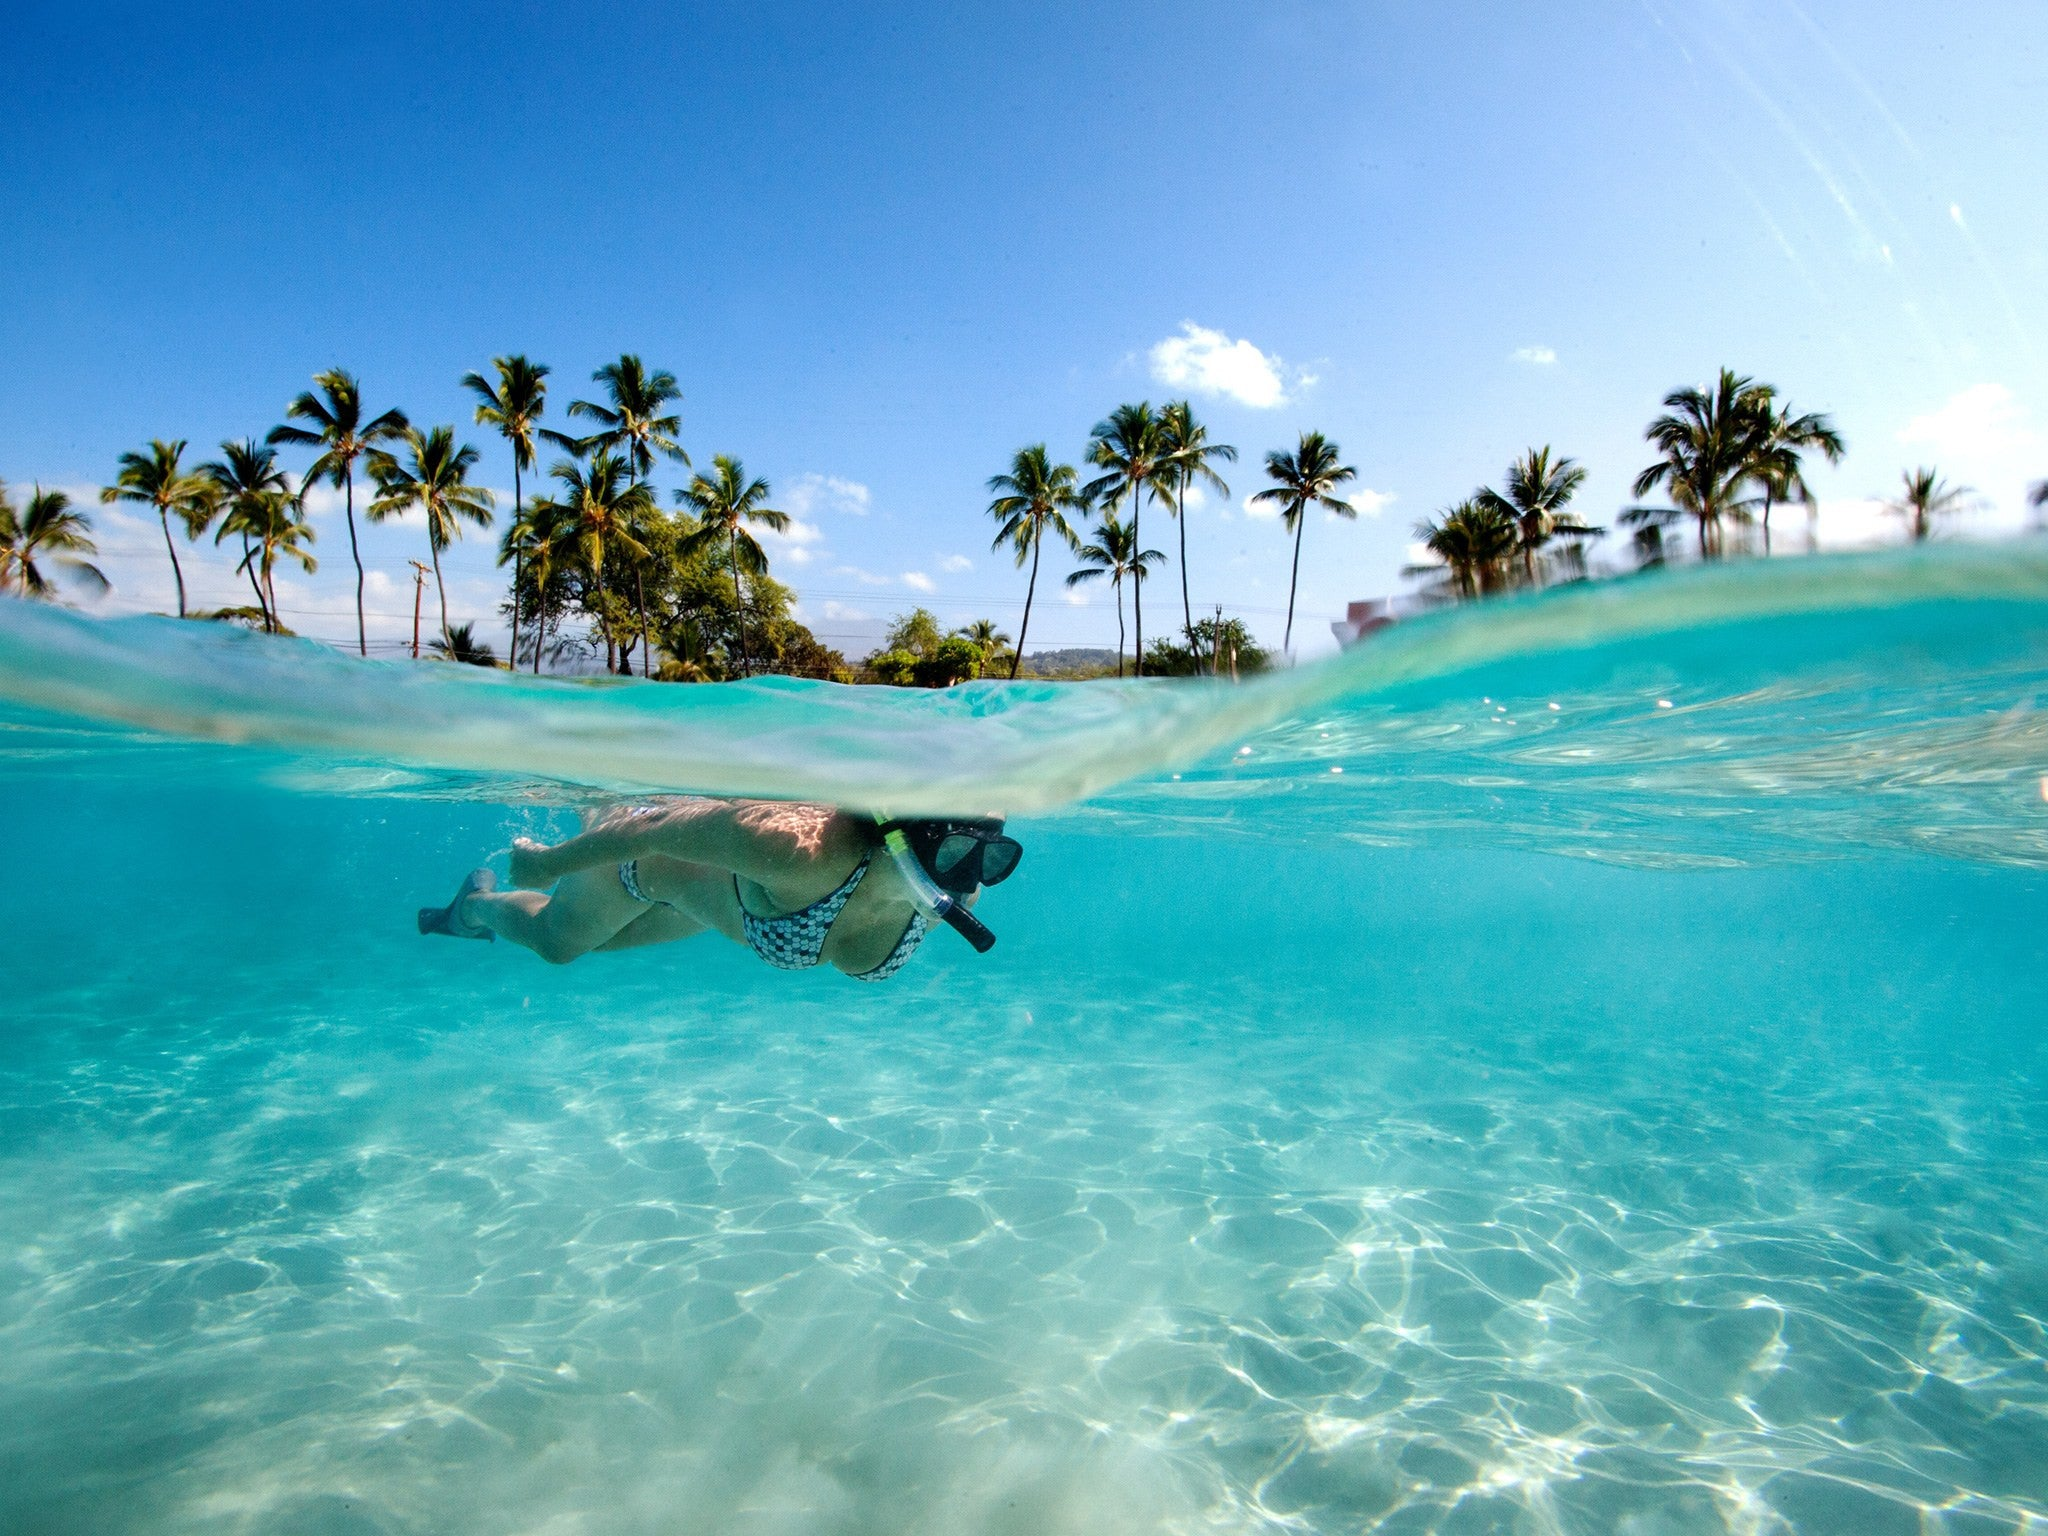 Top 25 Best Island Beaches for Swimming and Snorkeling (#25 to #21)